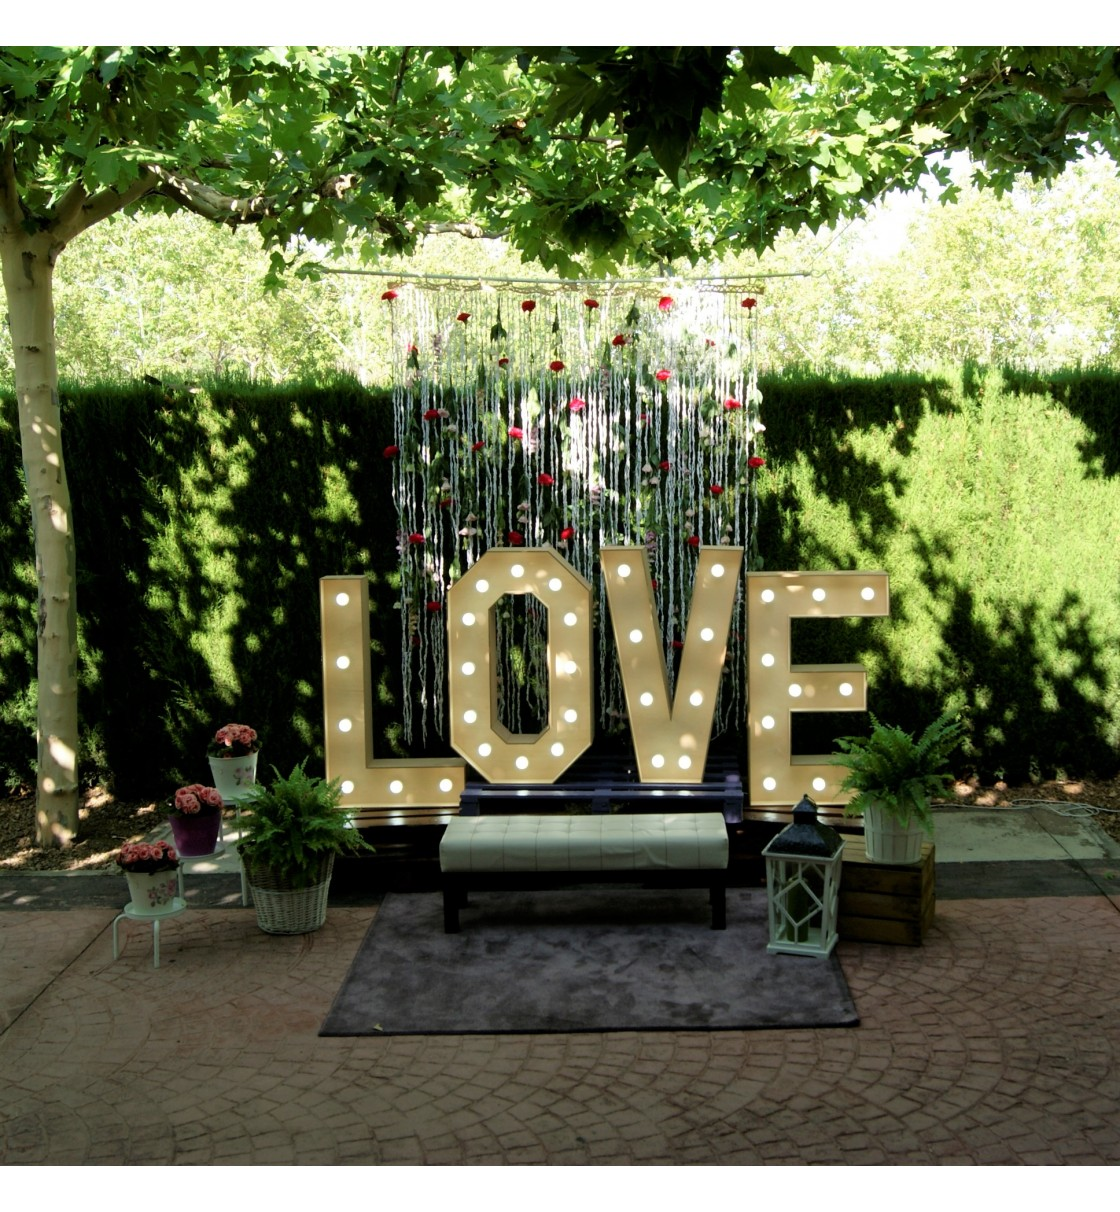 Photocall Love con cortina floral